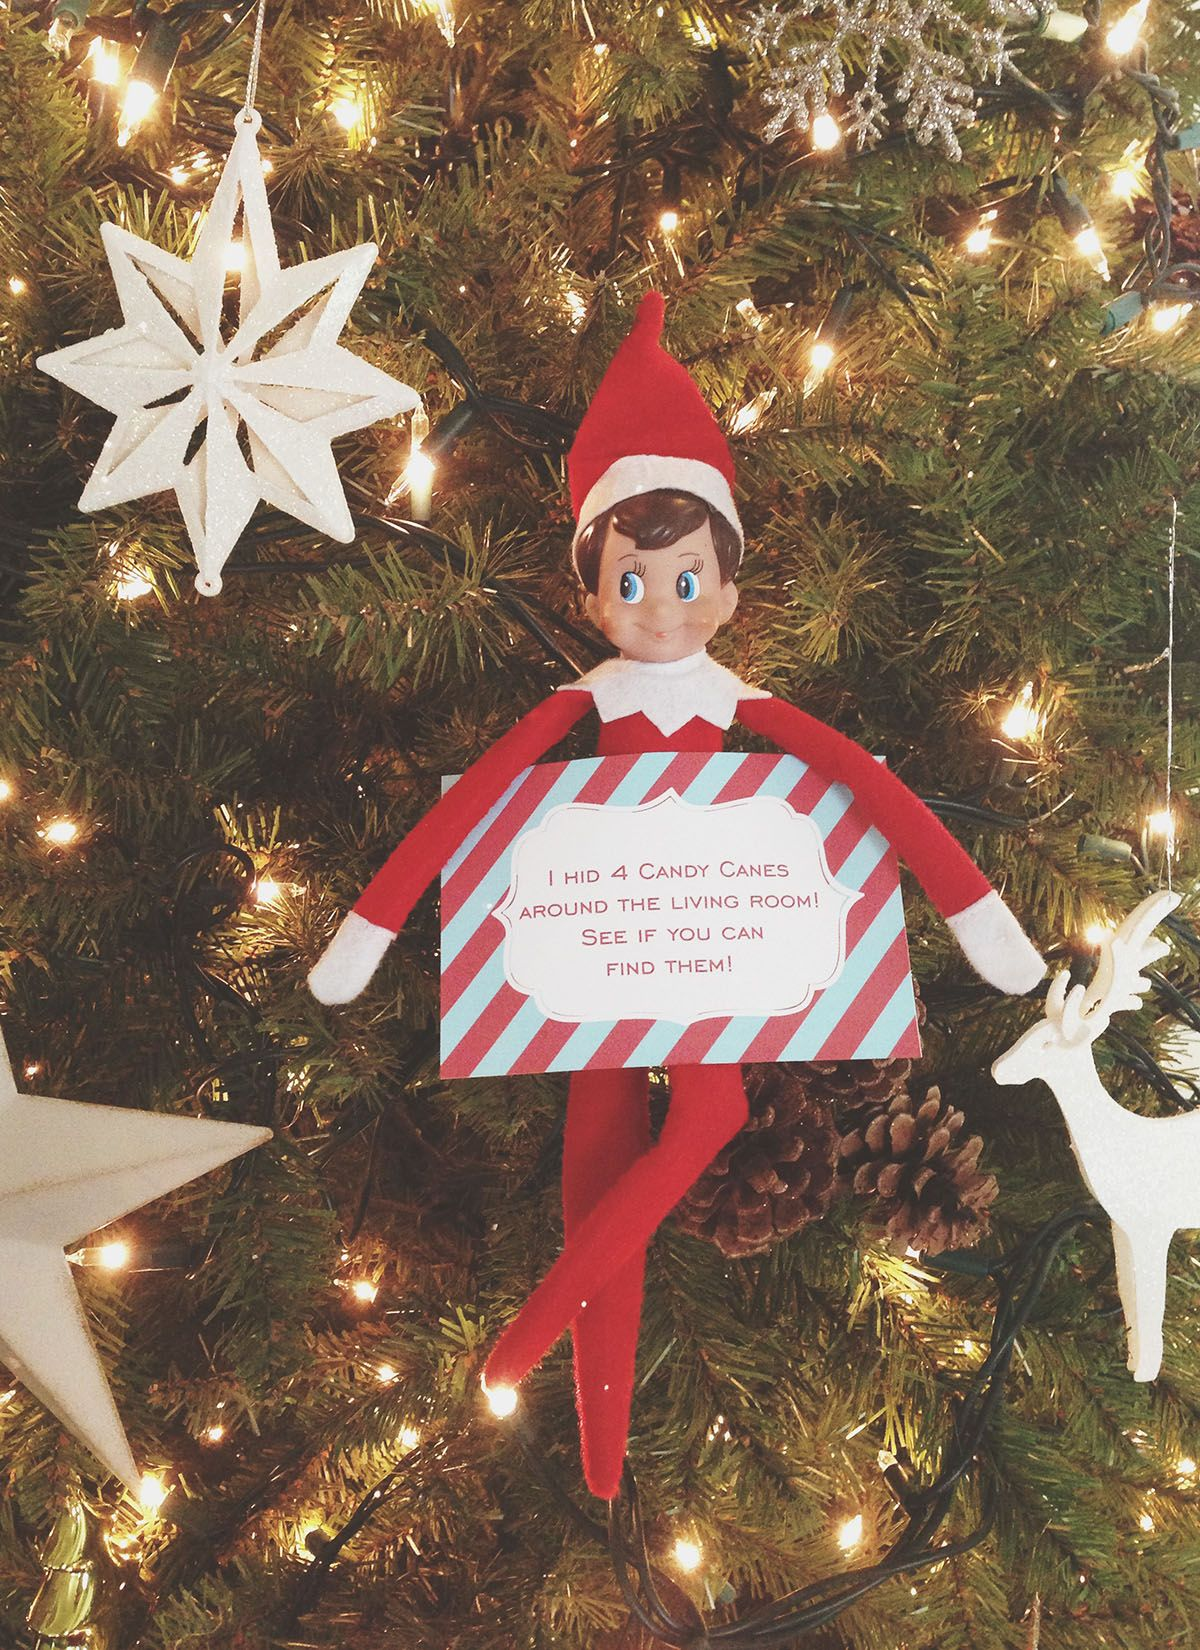 More than 40 Easy Elf on the Shelf Ideas Elf Antics